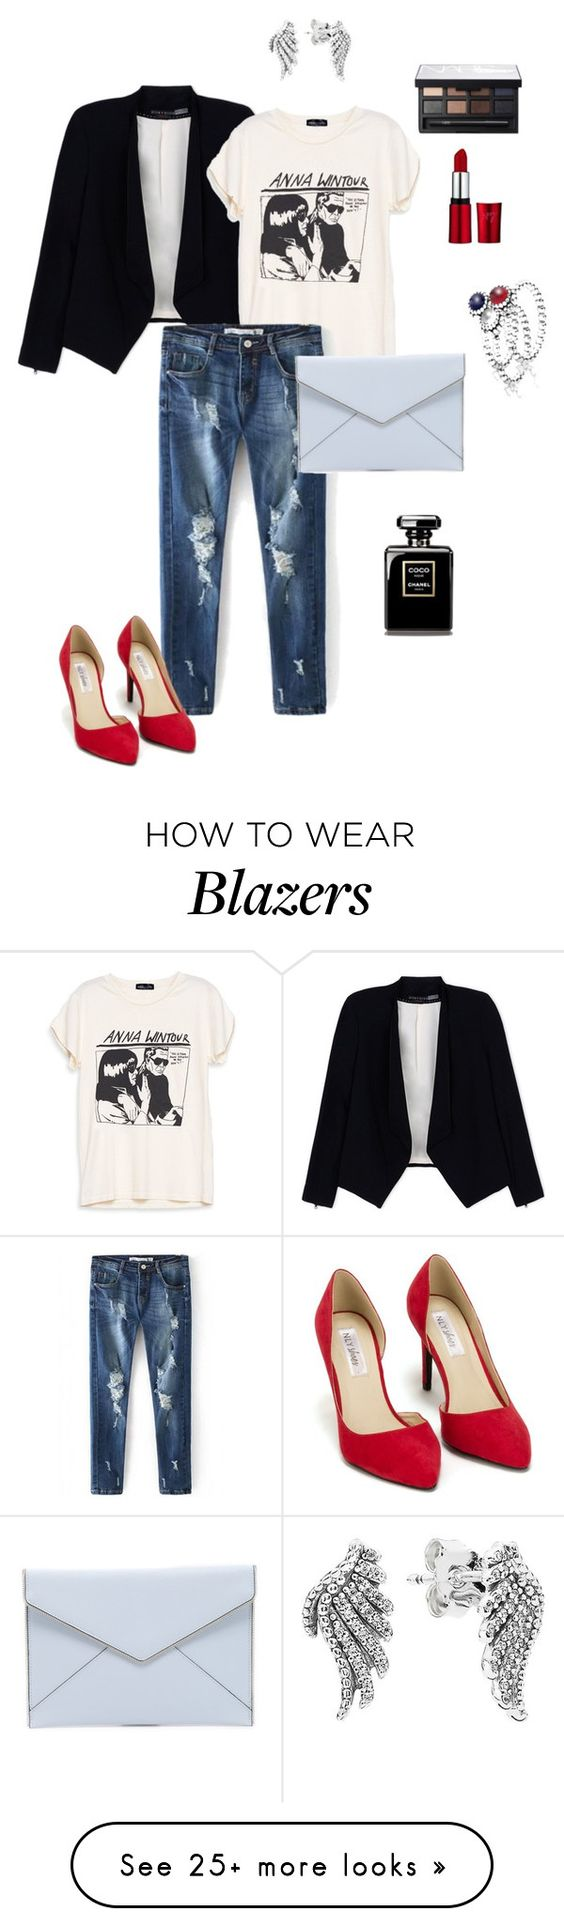 """""""red pumps"""" by ulusia-1 on Polyvore featuring Alice + Olivia, Nly Shoes, Rebecca Minkoff, Pandora and NARS Cosmetics"""